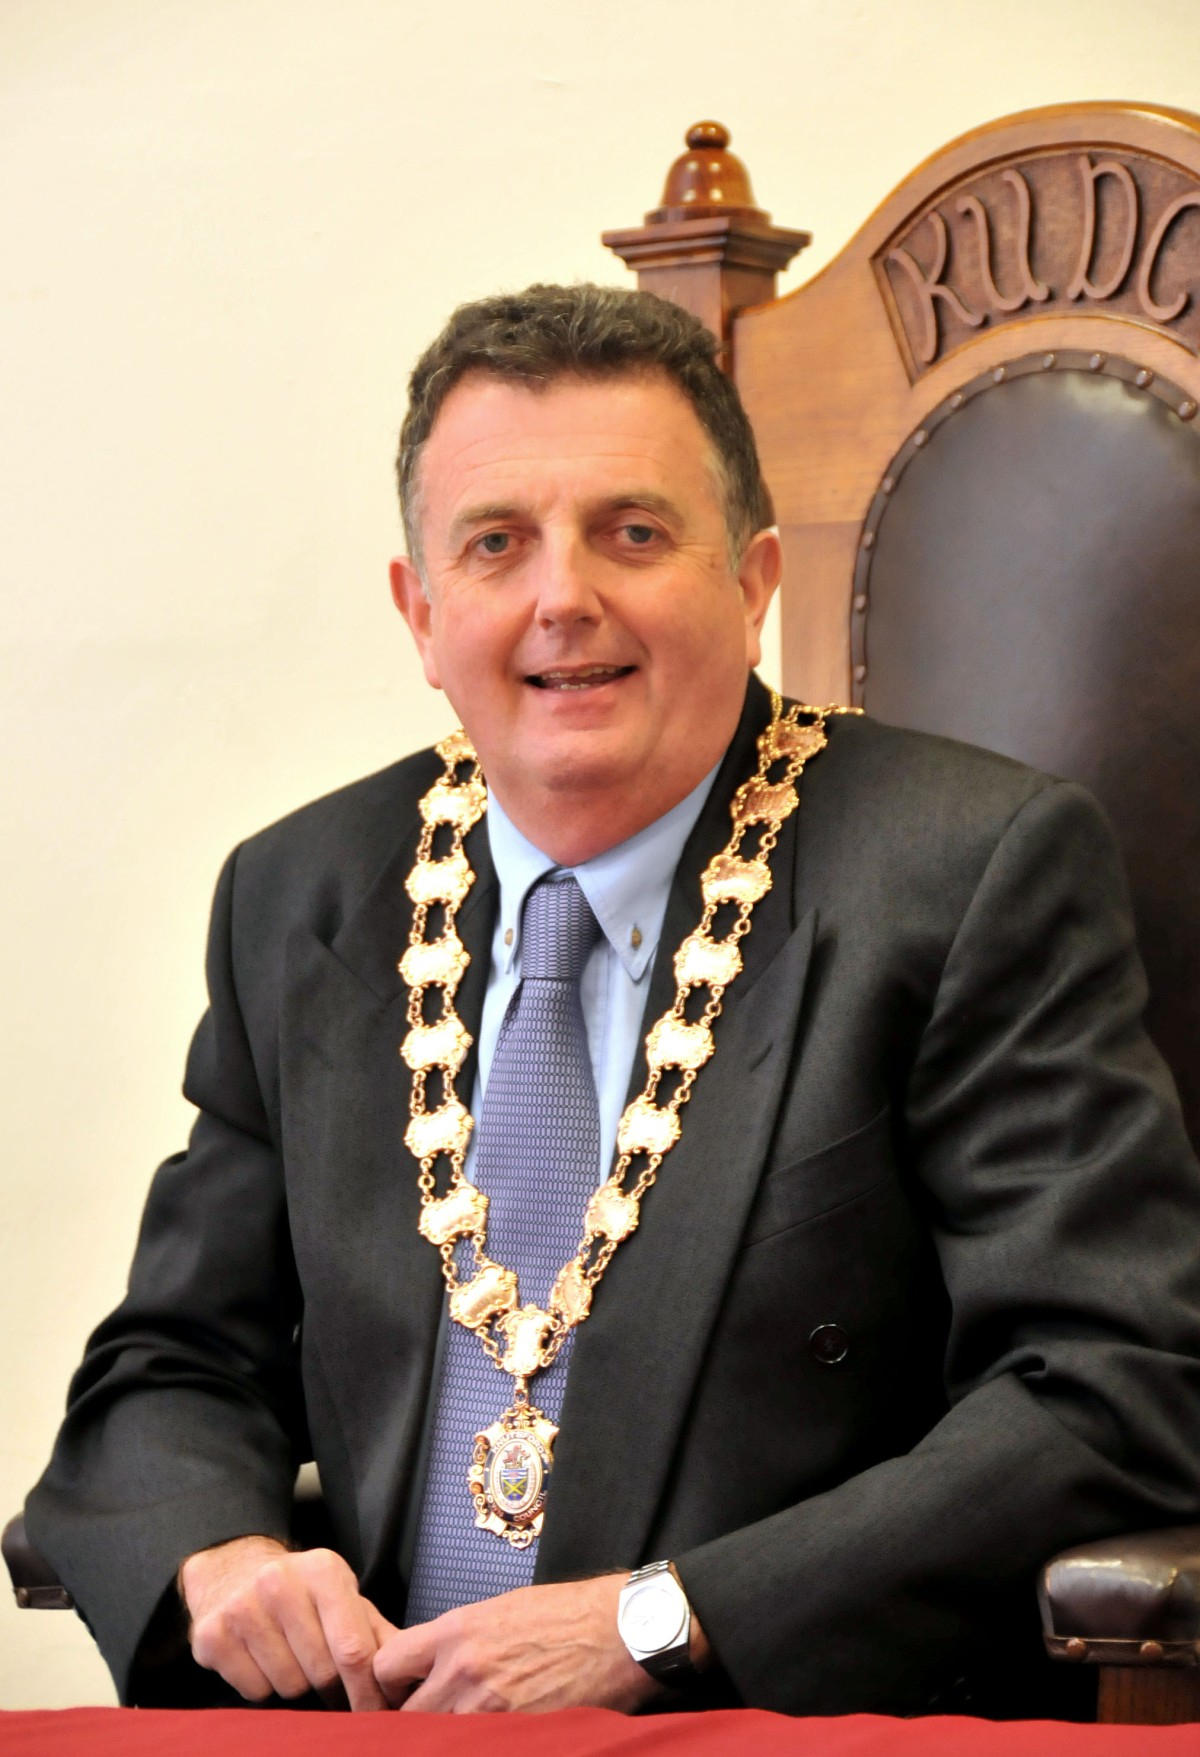 Clr Neil Forbes takes up position as Knutsford's new mayor